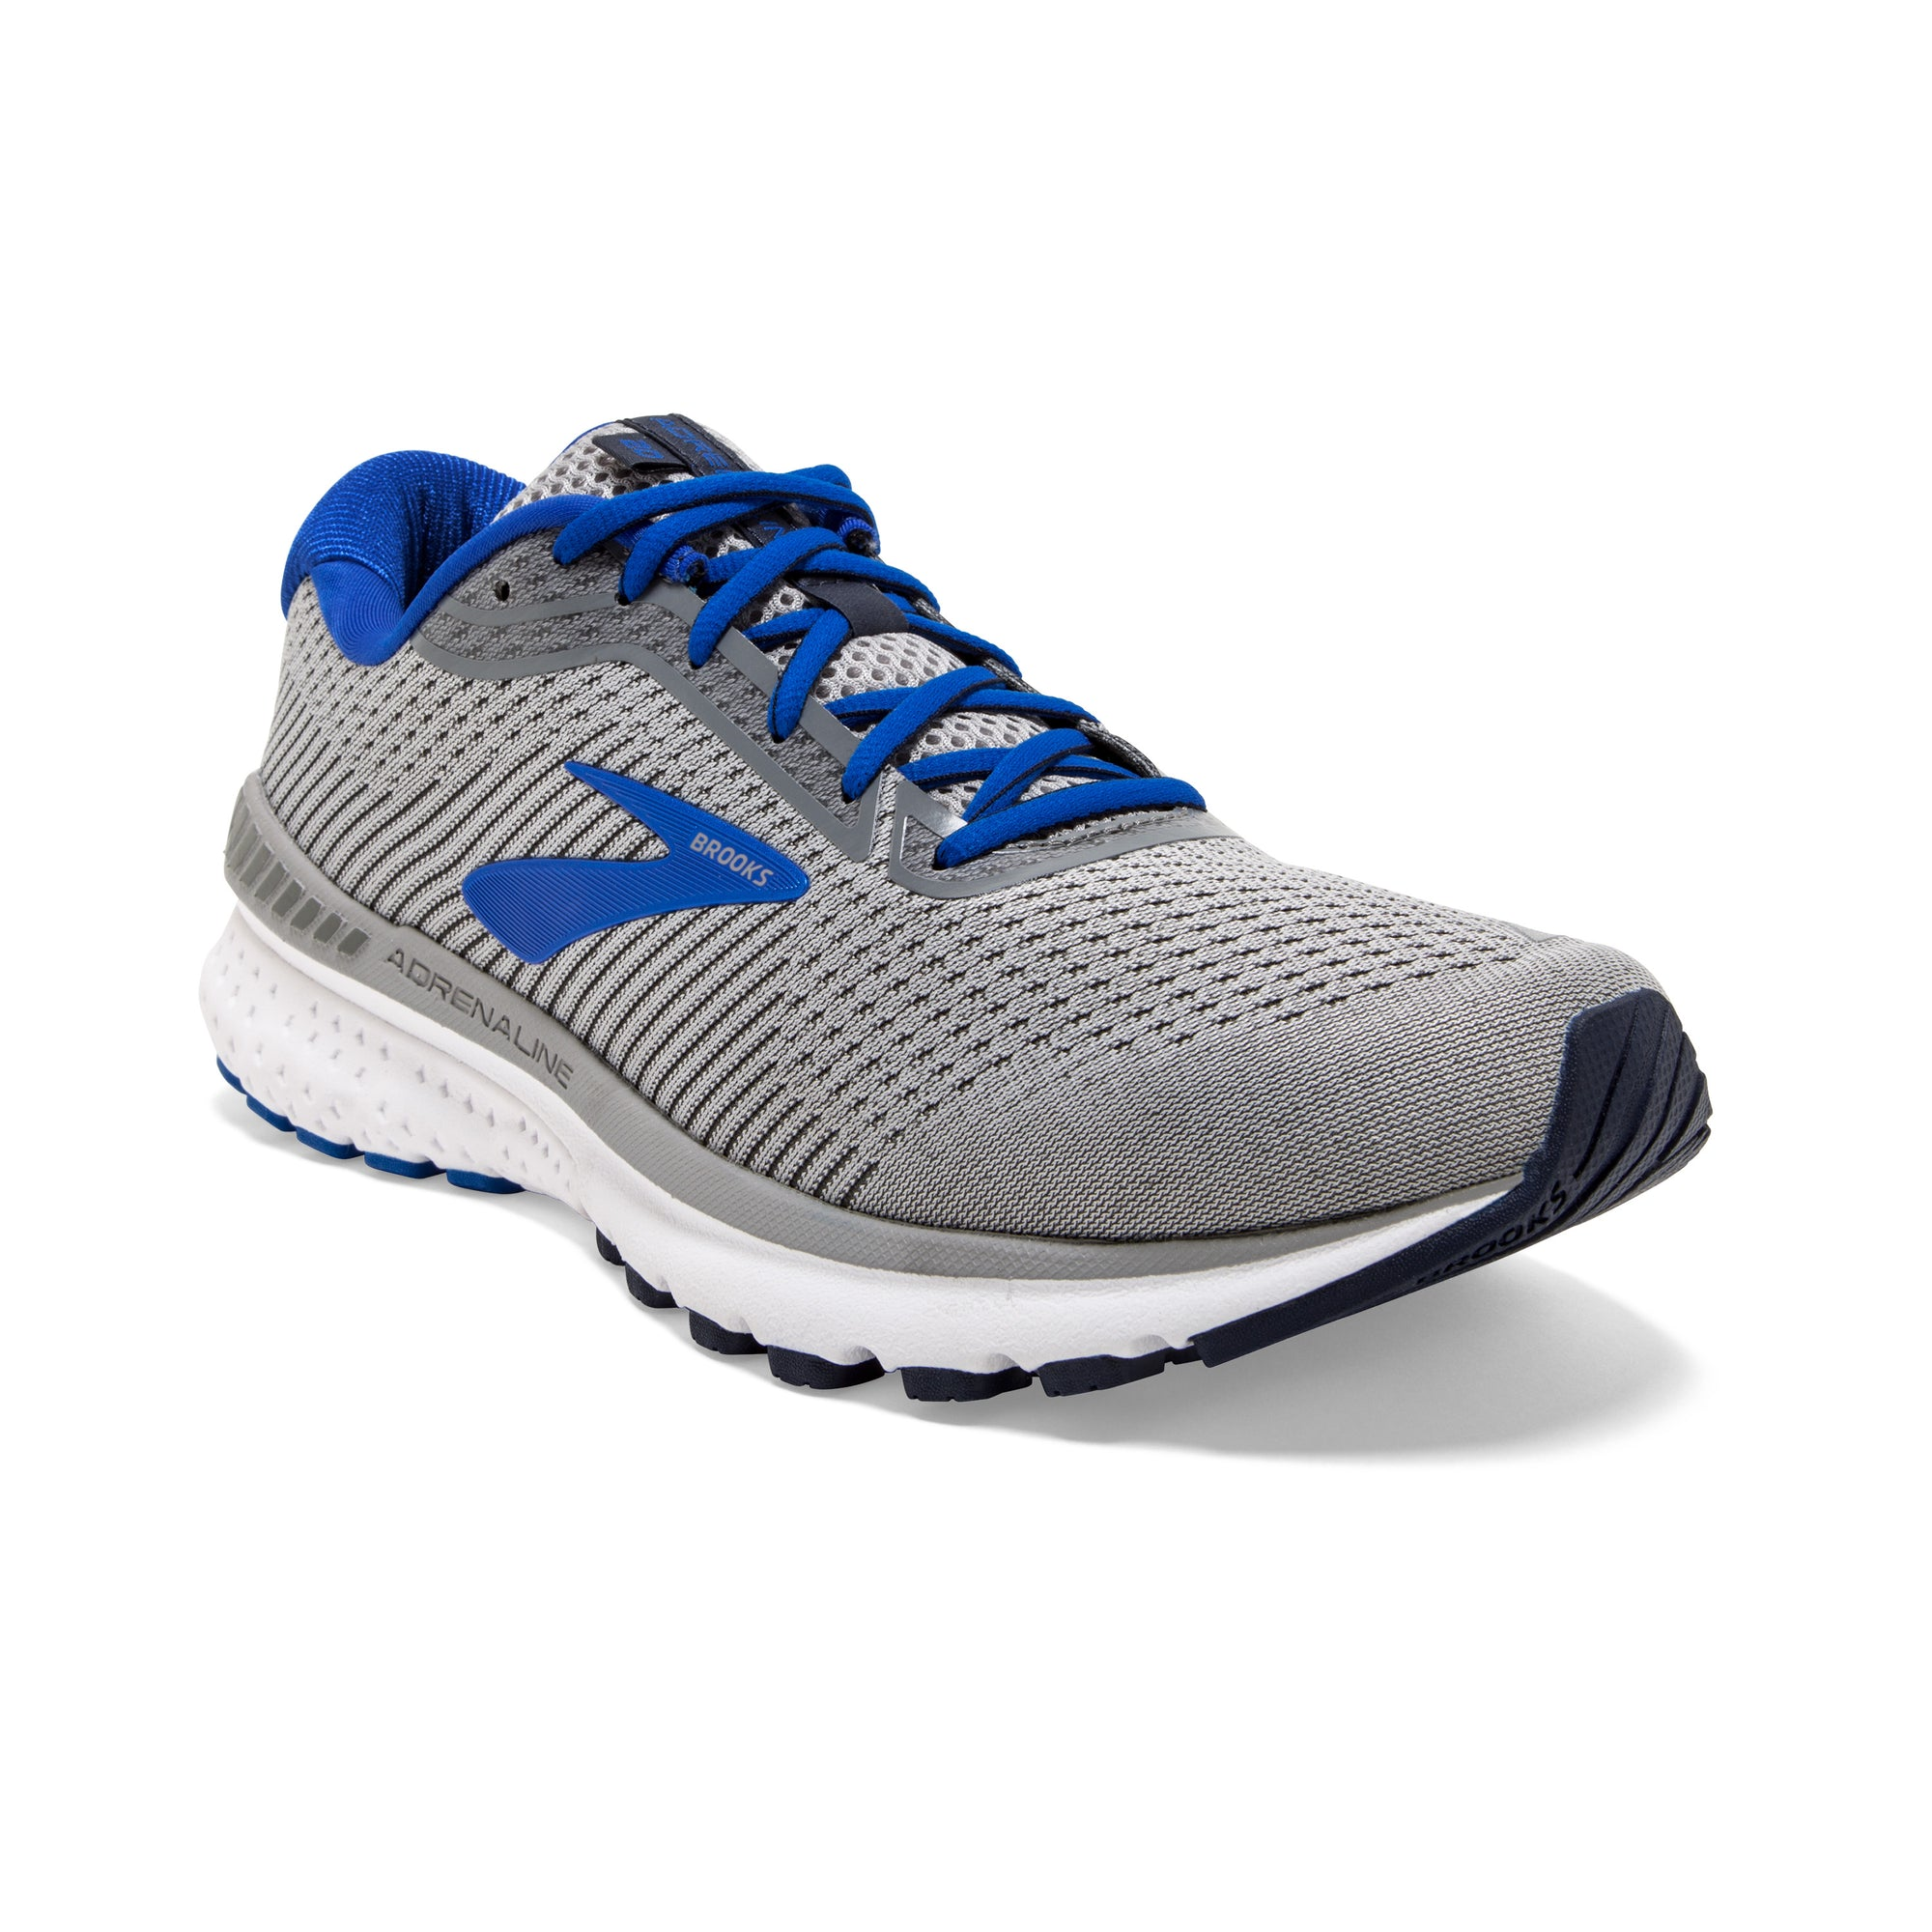 Men's Adrenaline GTS 20 Running Shoe (4E Extra Wide) GreyBlueNavy